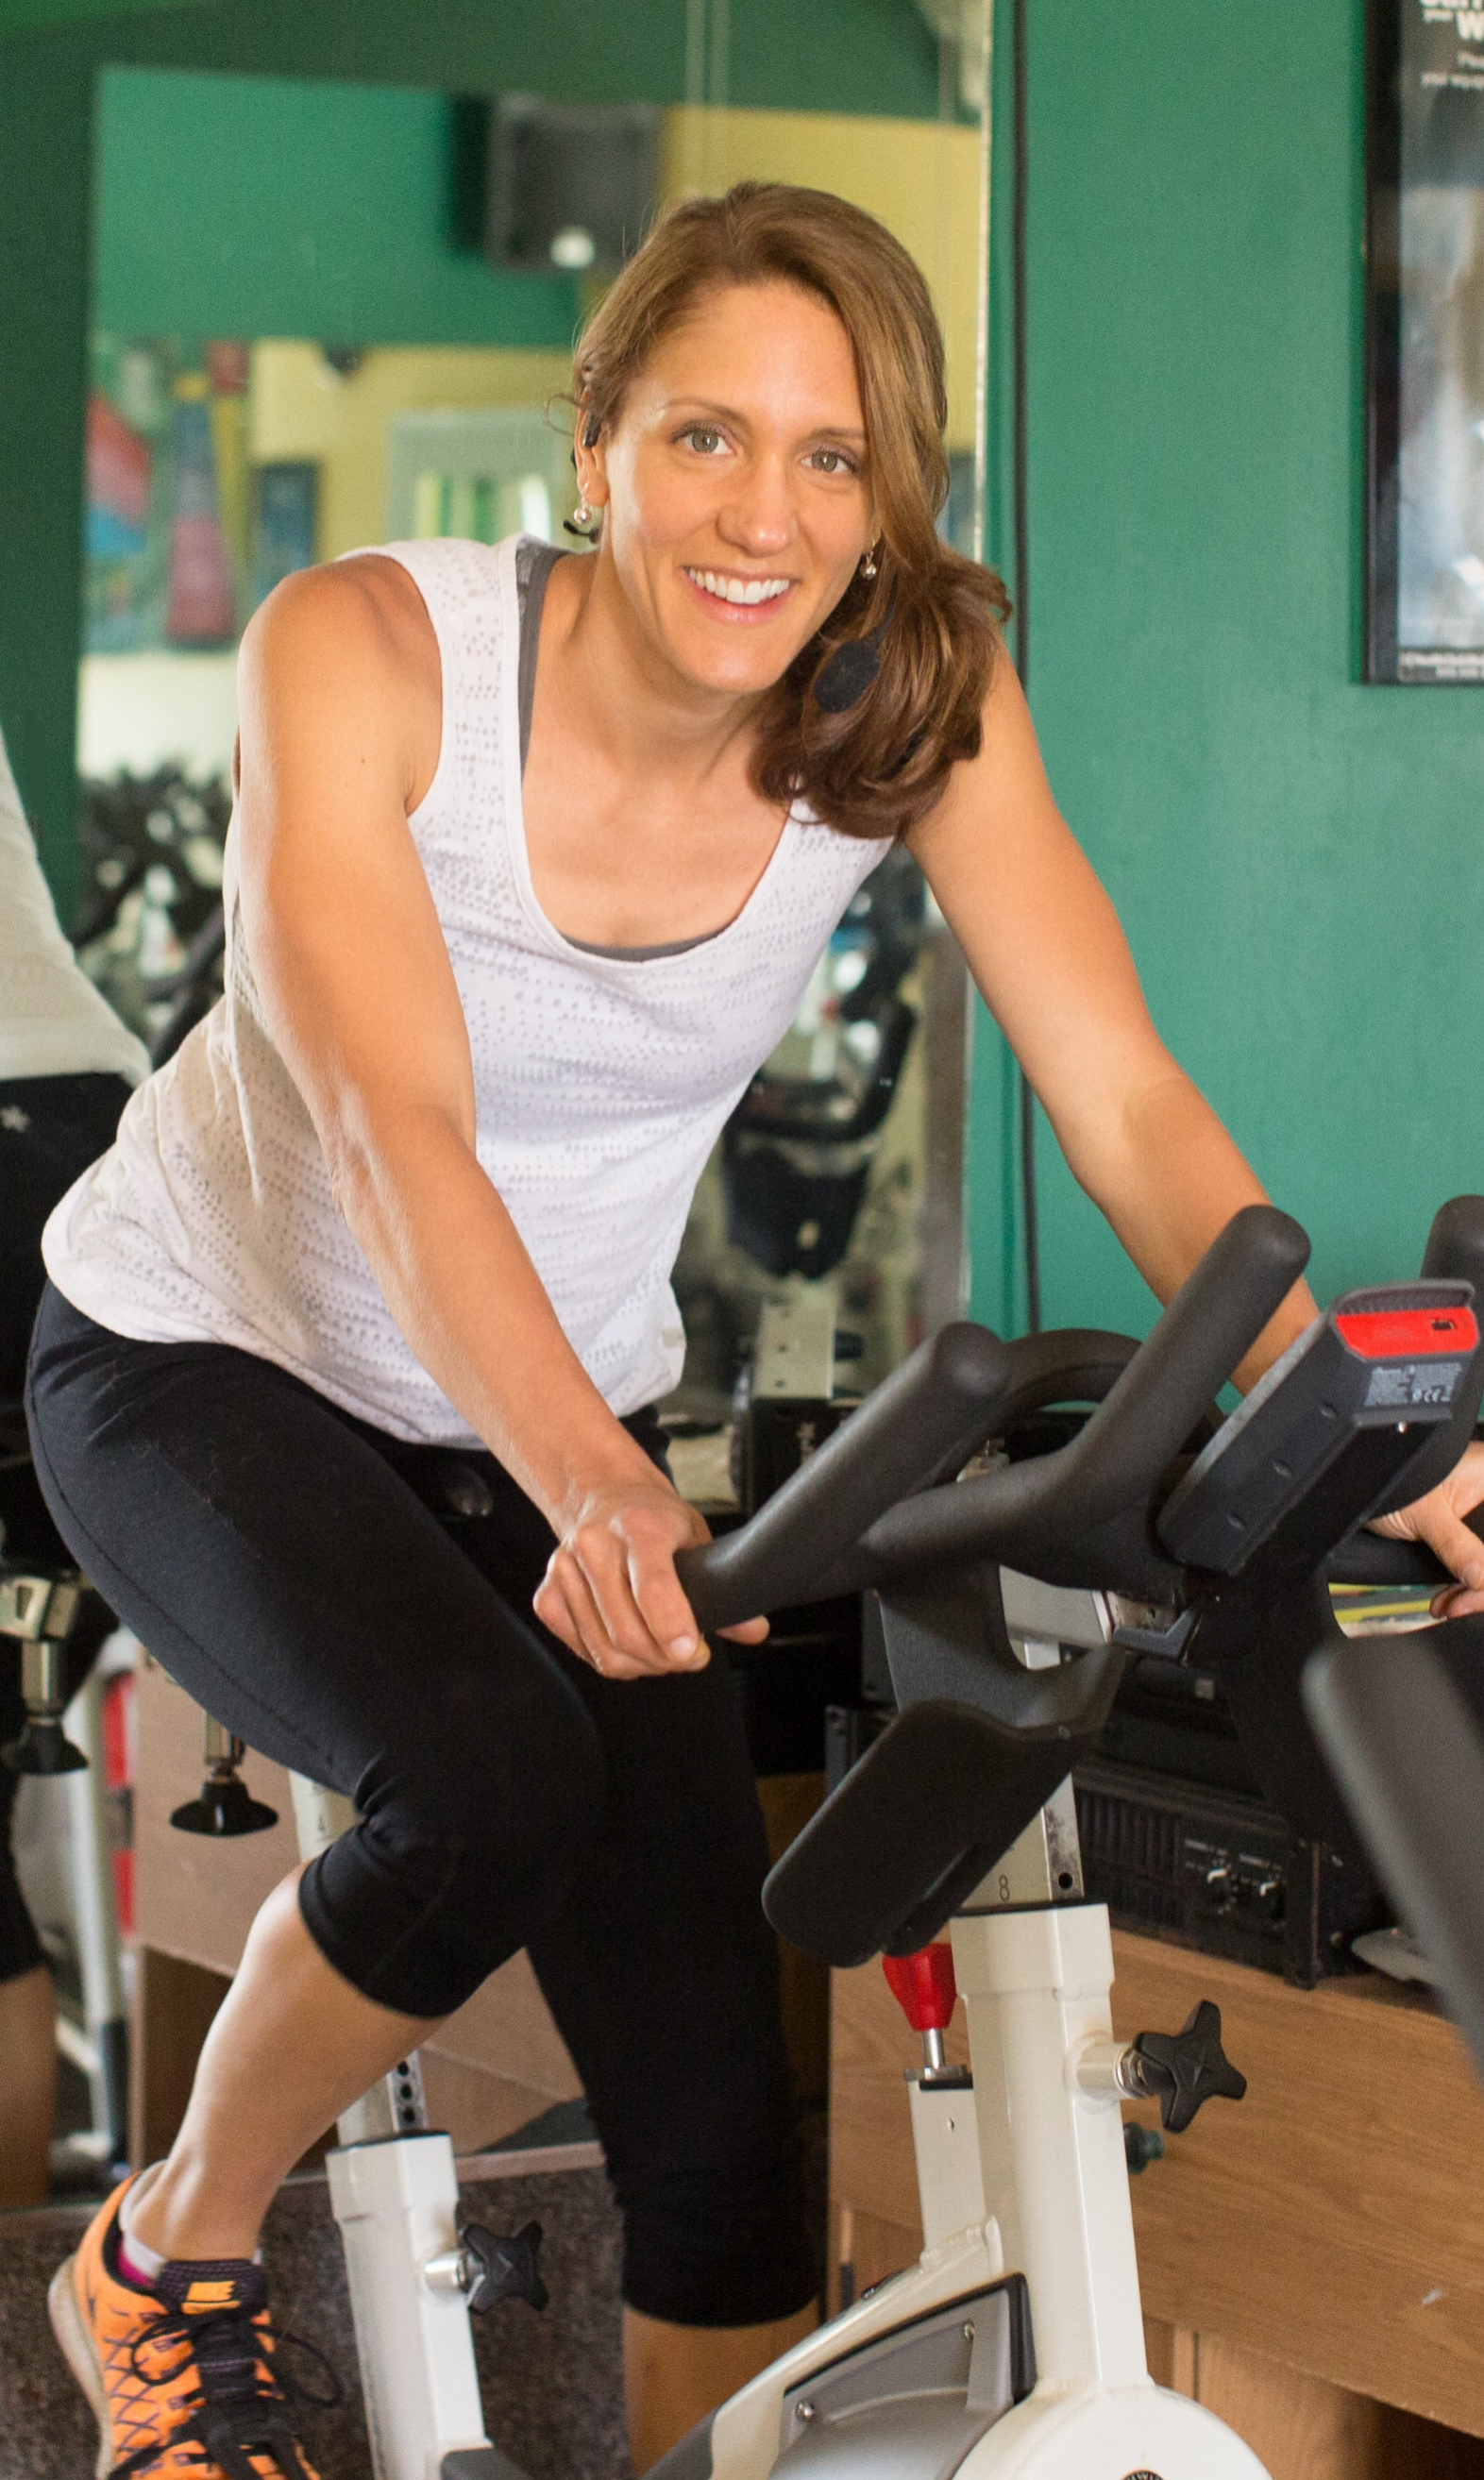 amy-barnette-indoor-cycle.jpg